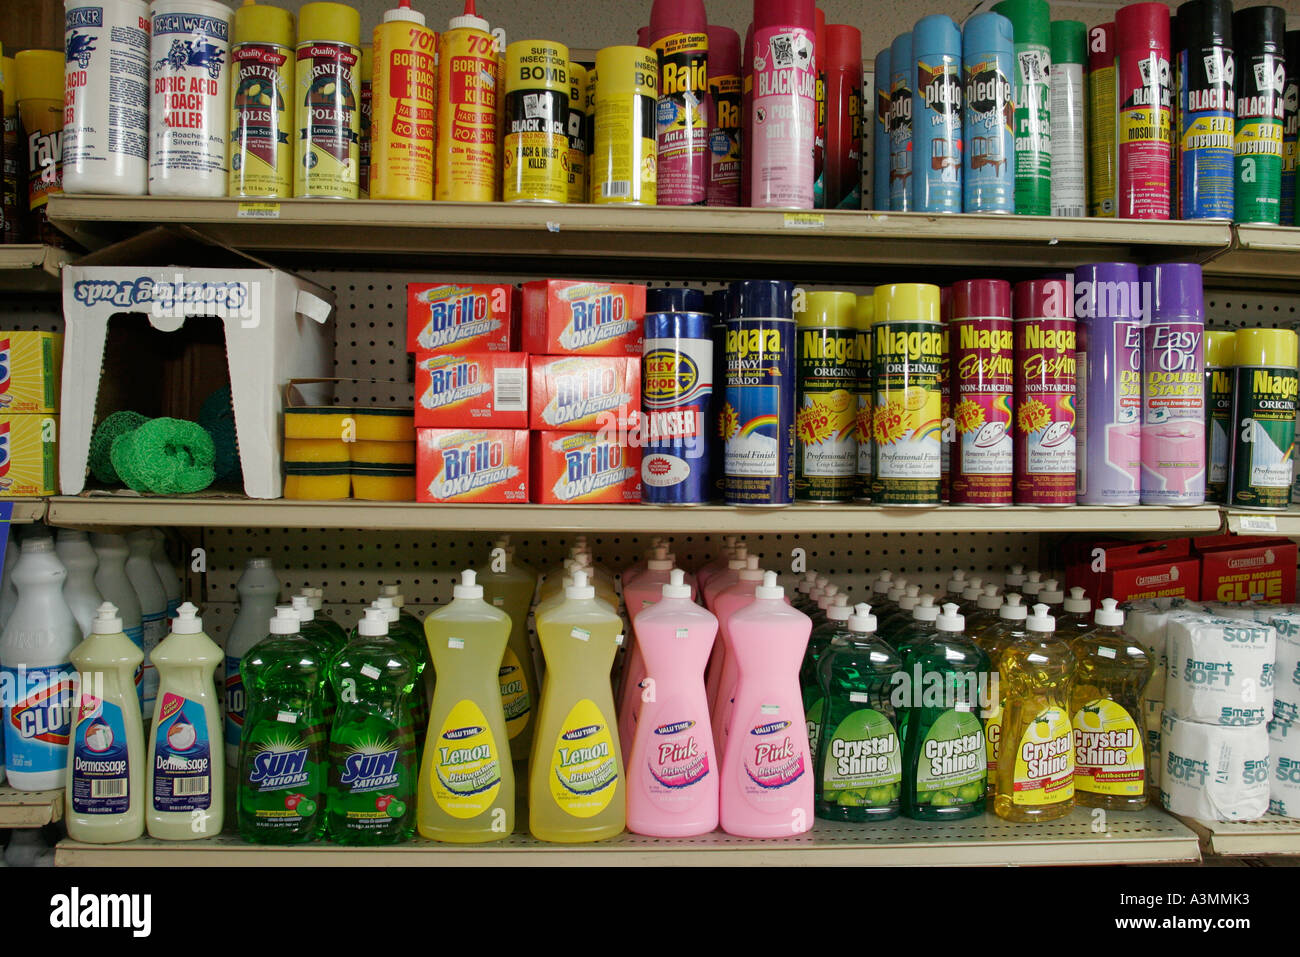 Miami Florida Overtown L & J Groceries Shelves Cleaning Products